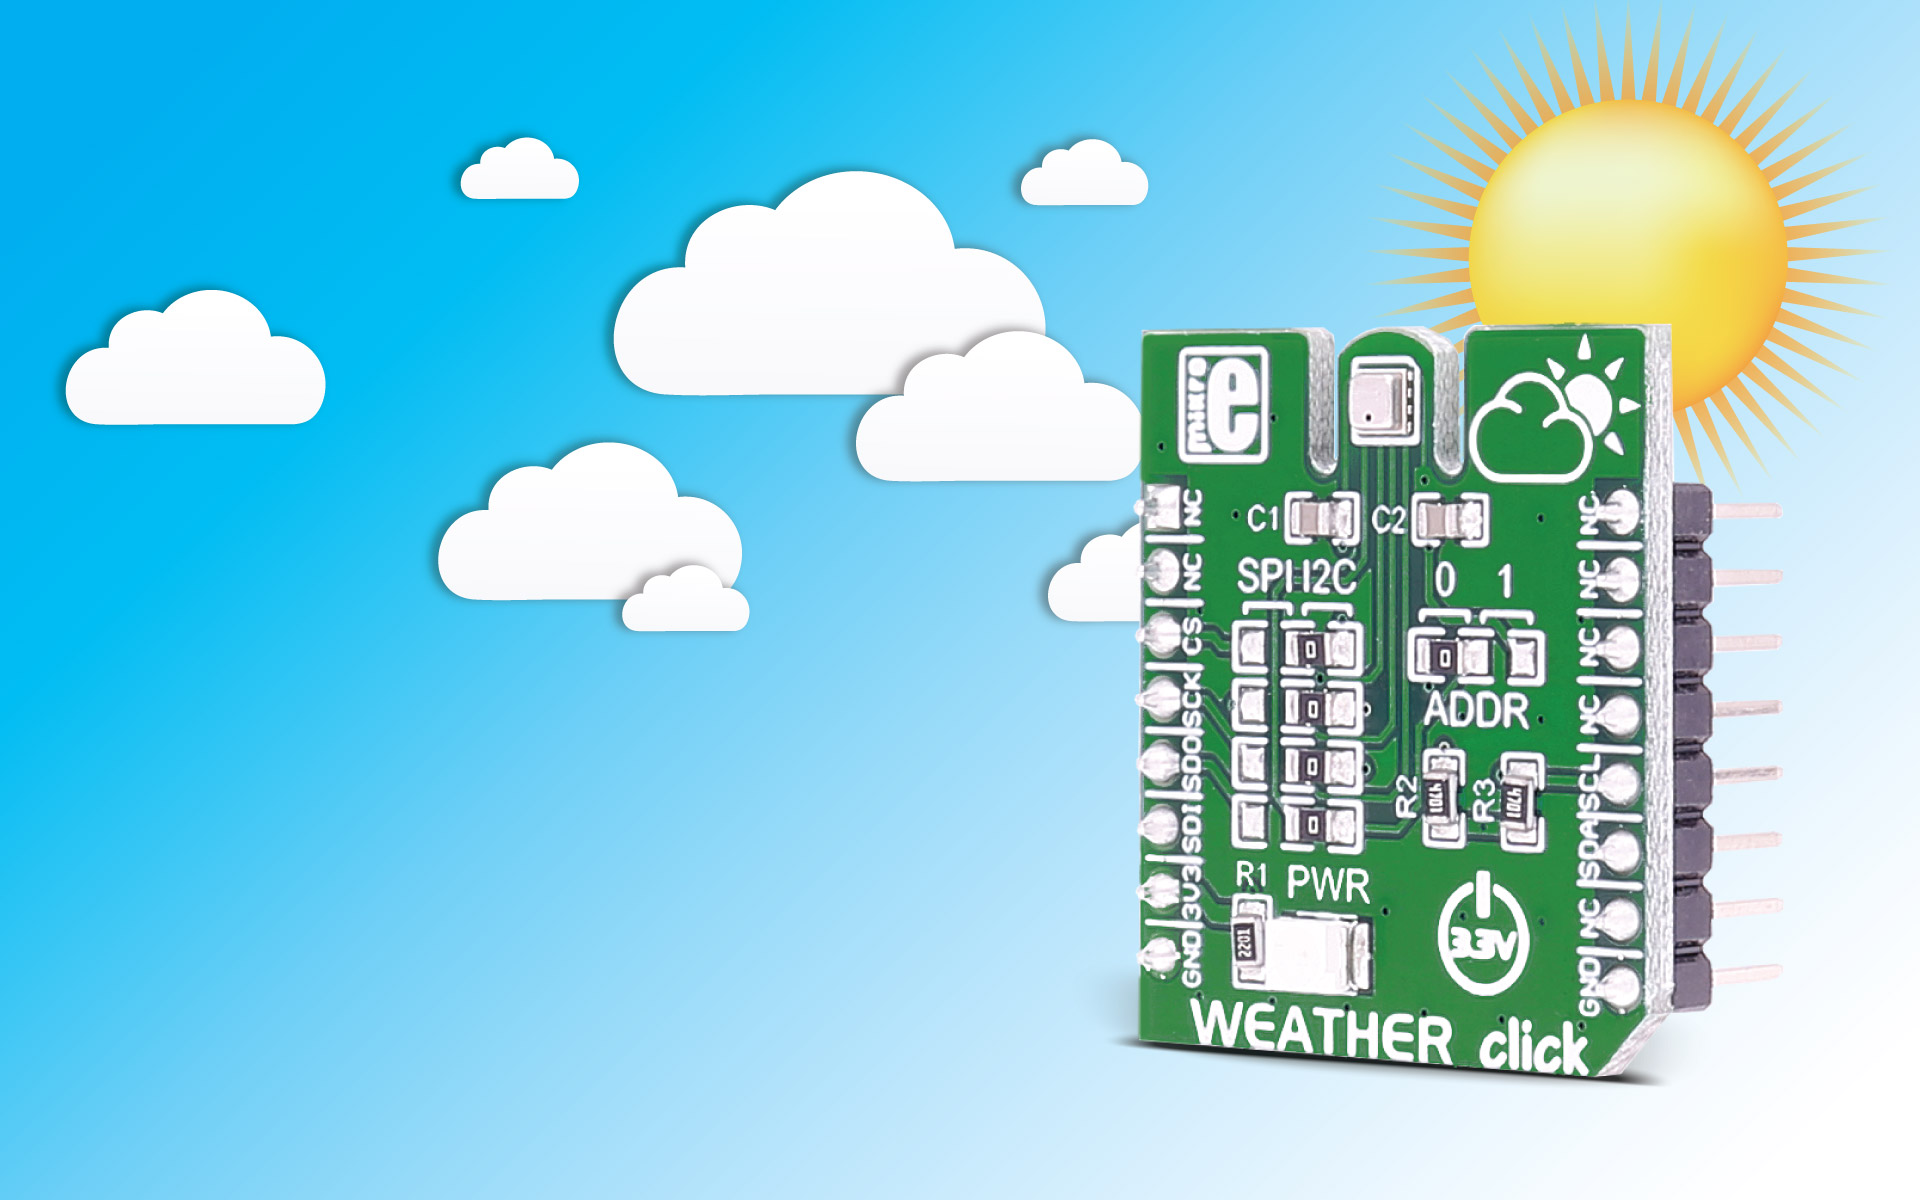 MikroE Click Board sSensors Weather click